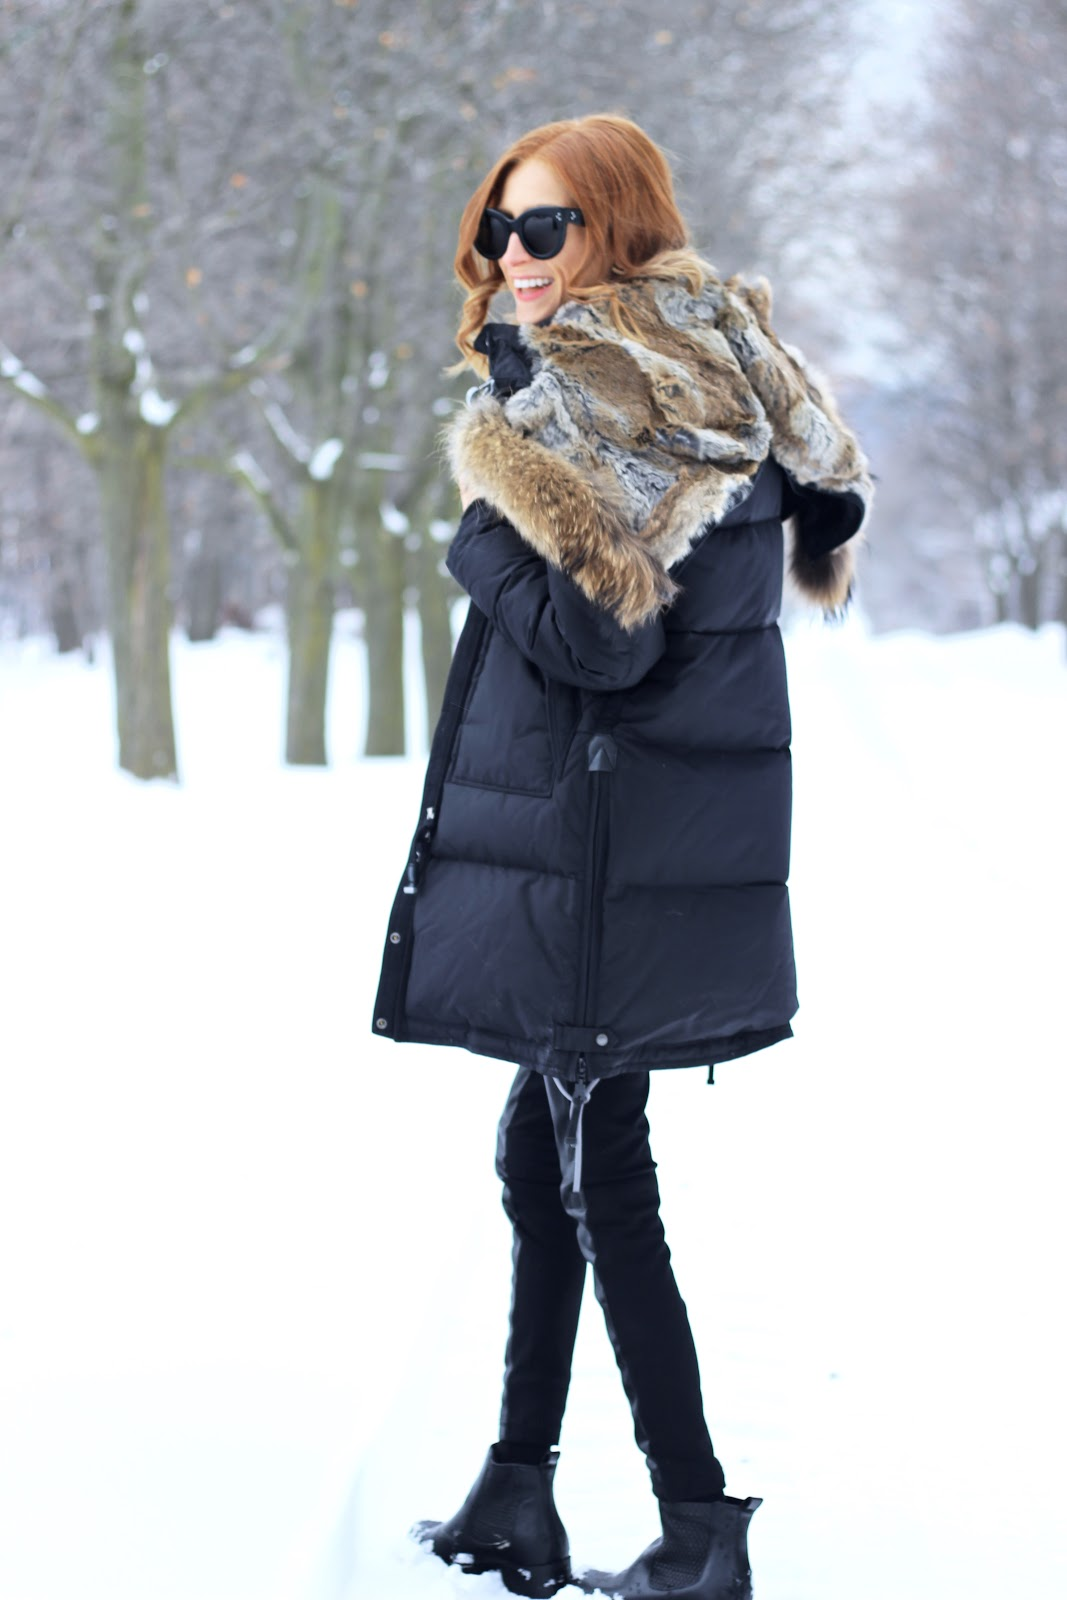 Parajumpers Womens Long Bear parka, Cougar COPE boots, Canadian Winter